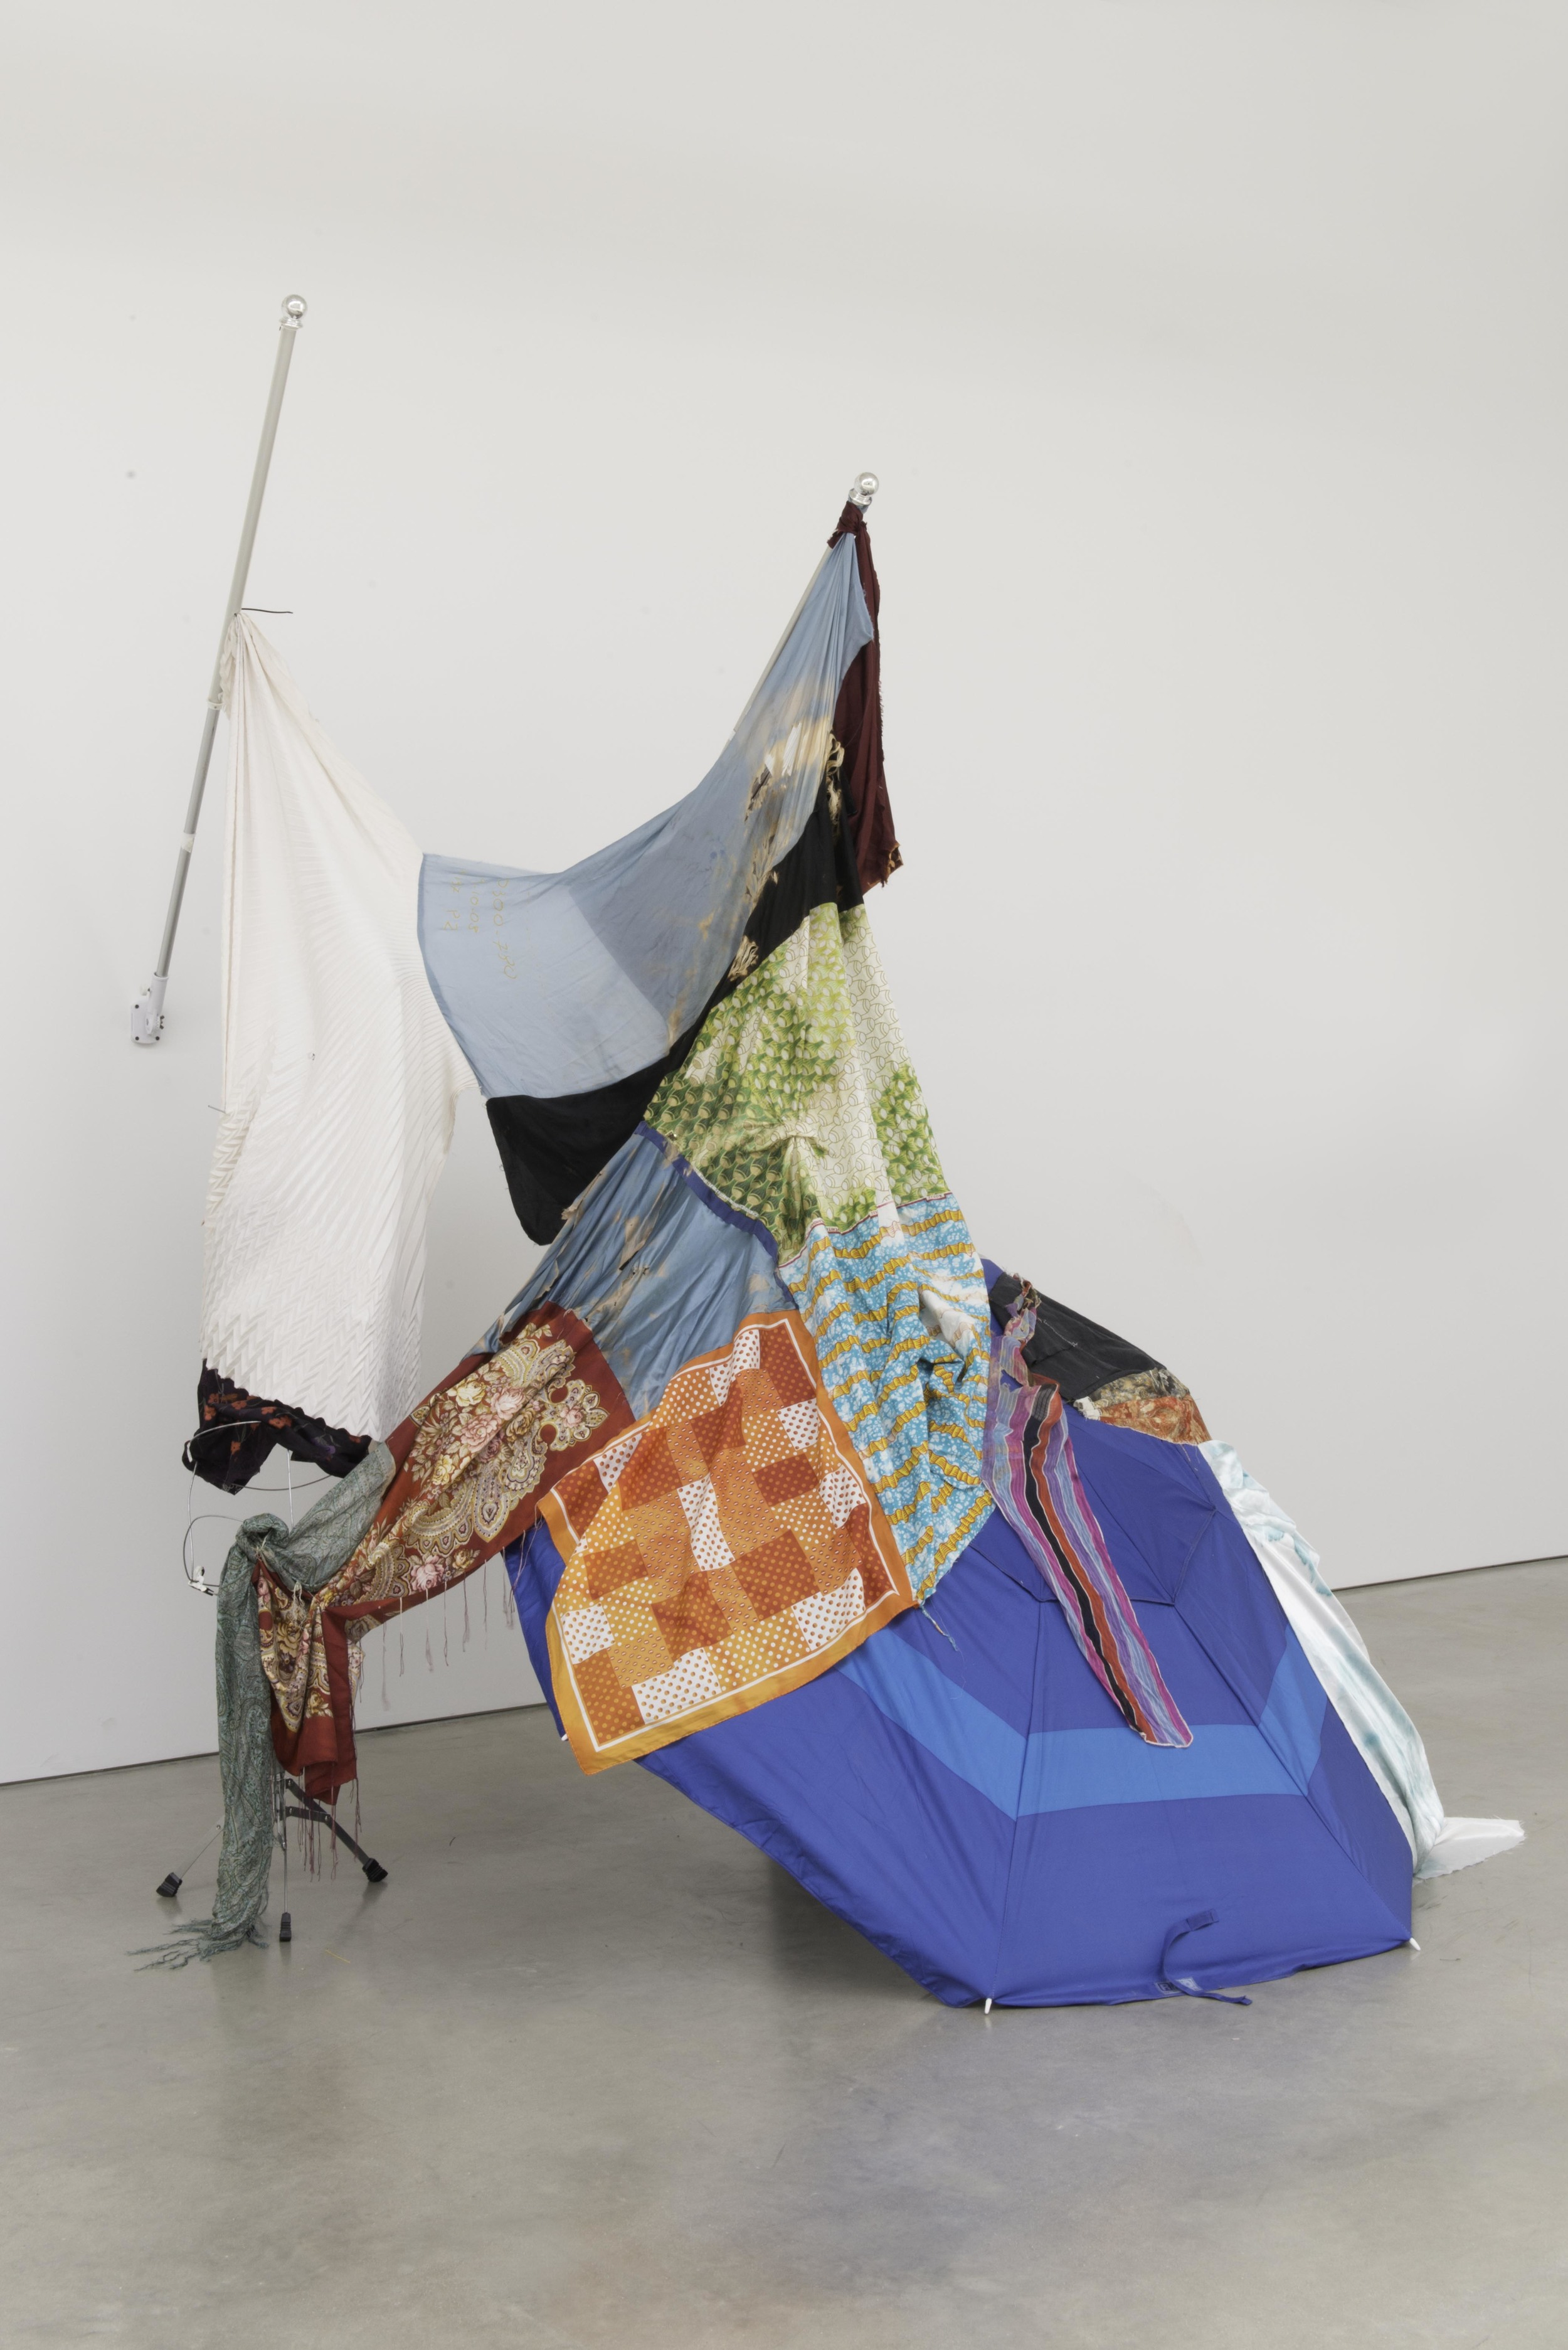 Eric Mack  Newdaline  2016 Two flagpoles, umbrella, silk, cotton, polyester, aluminum, wood, zip ties, and straight pins 108h x 102w x 92d in ENM001